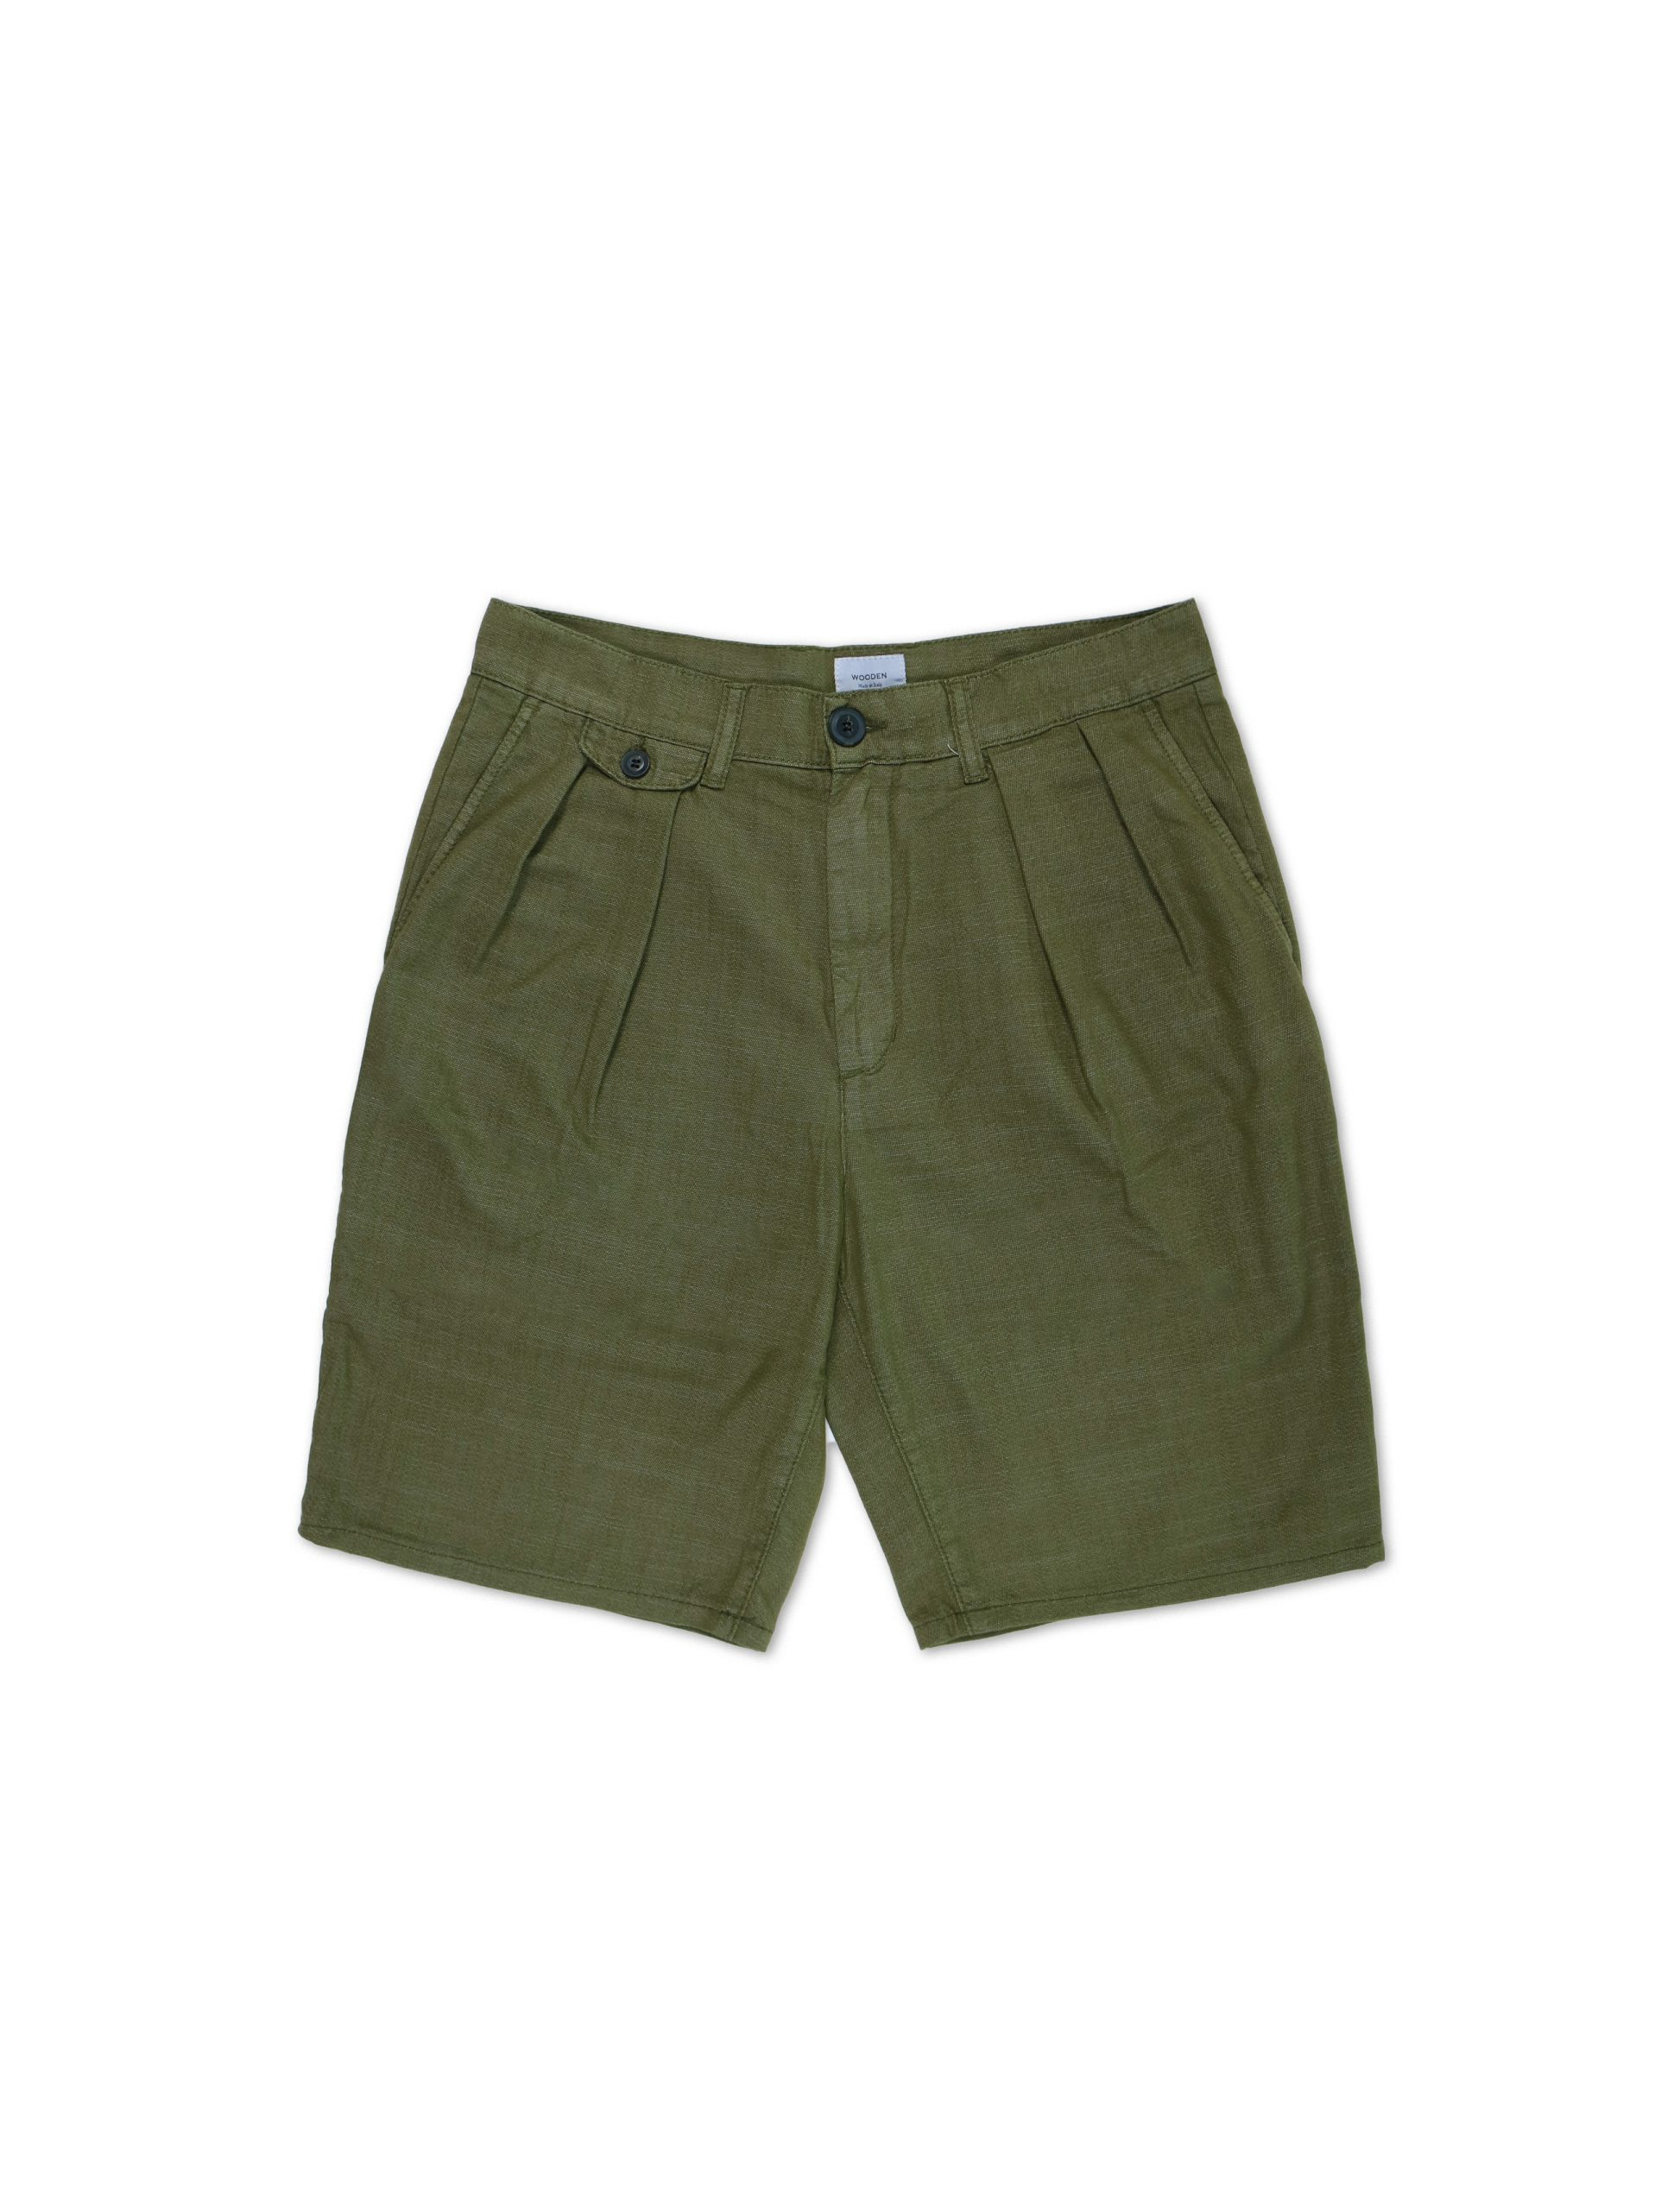 Paris Short Military | Wooden Store